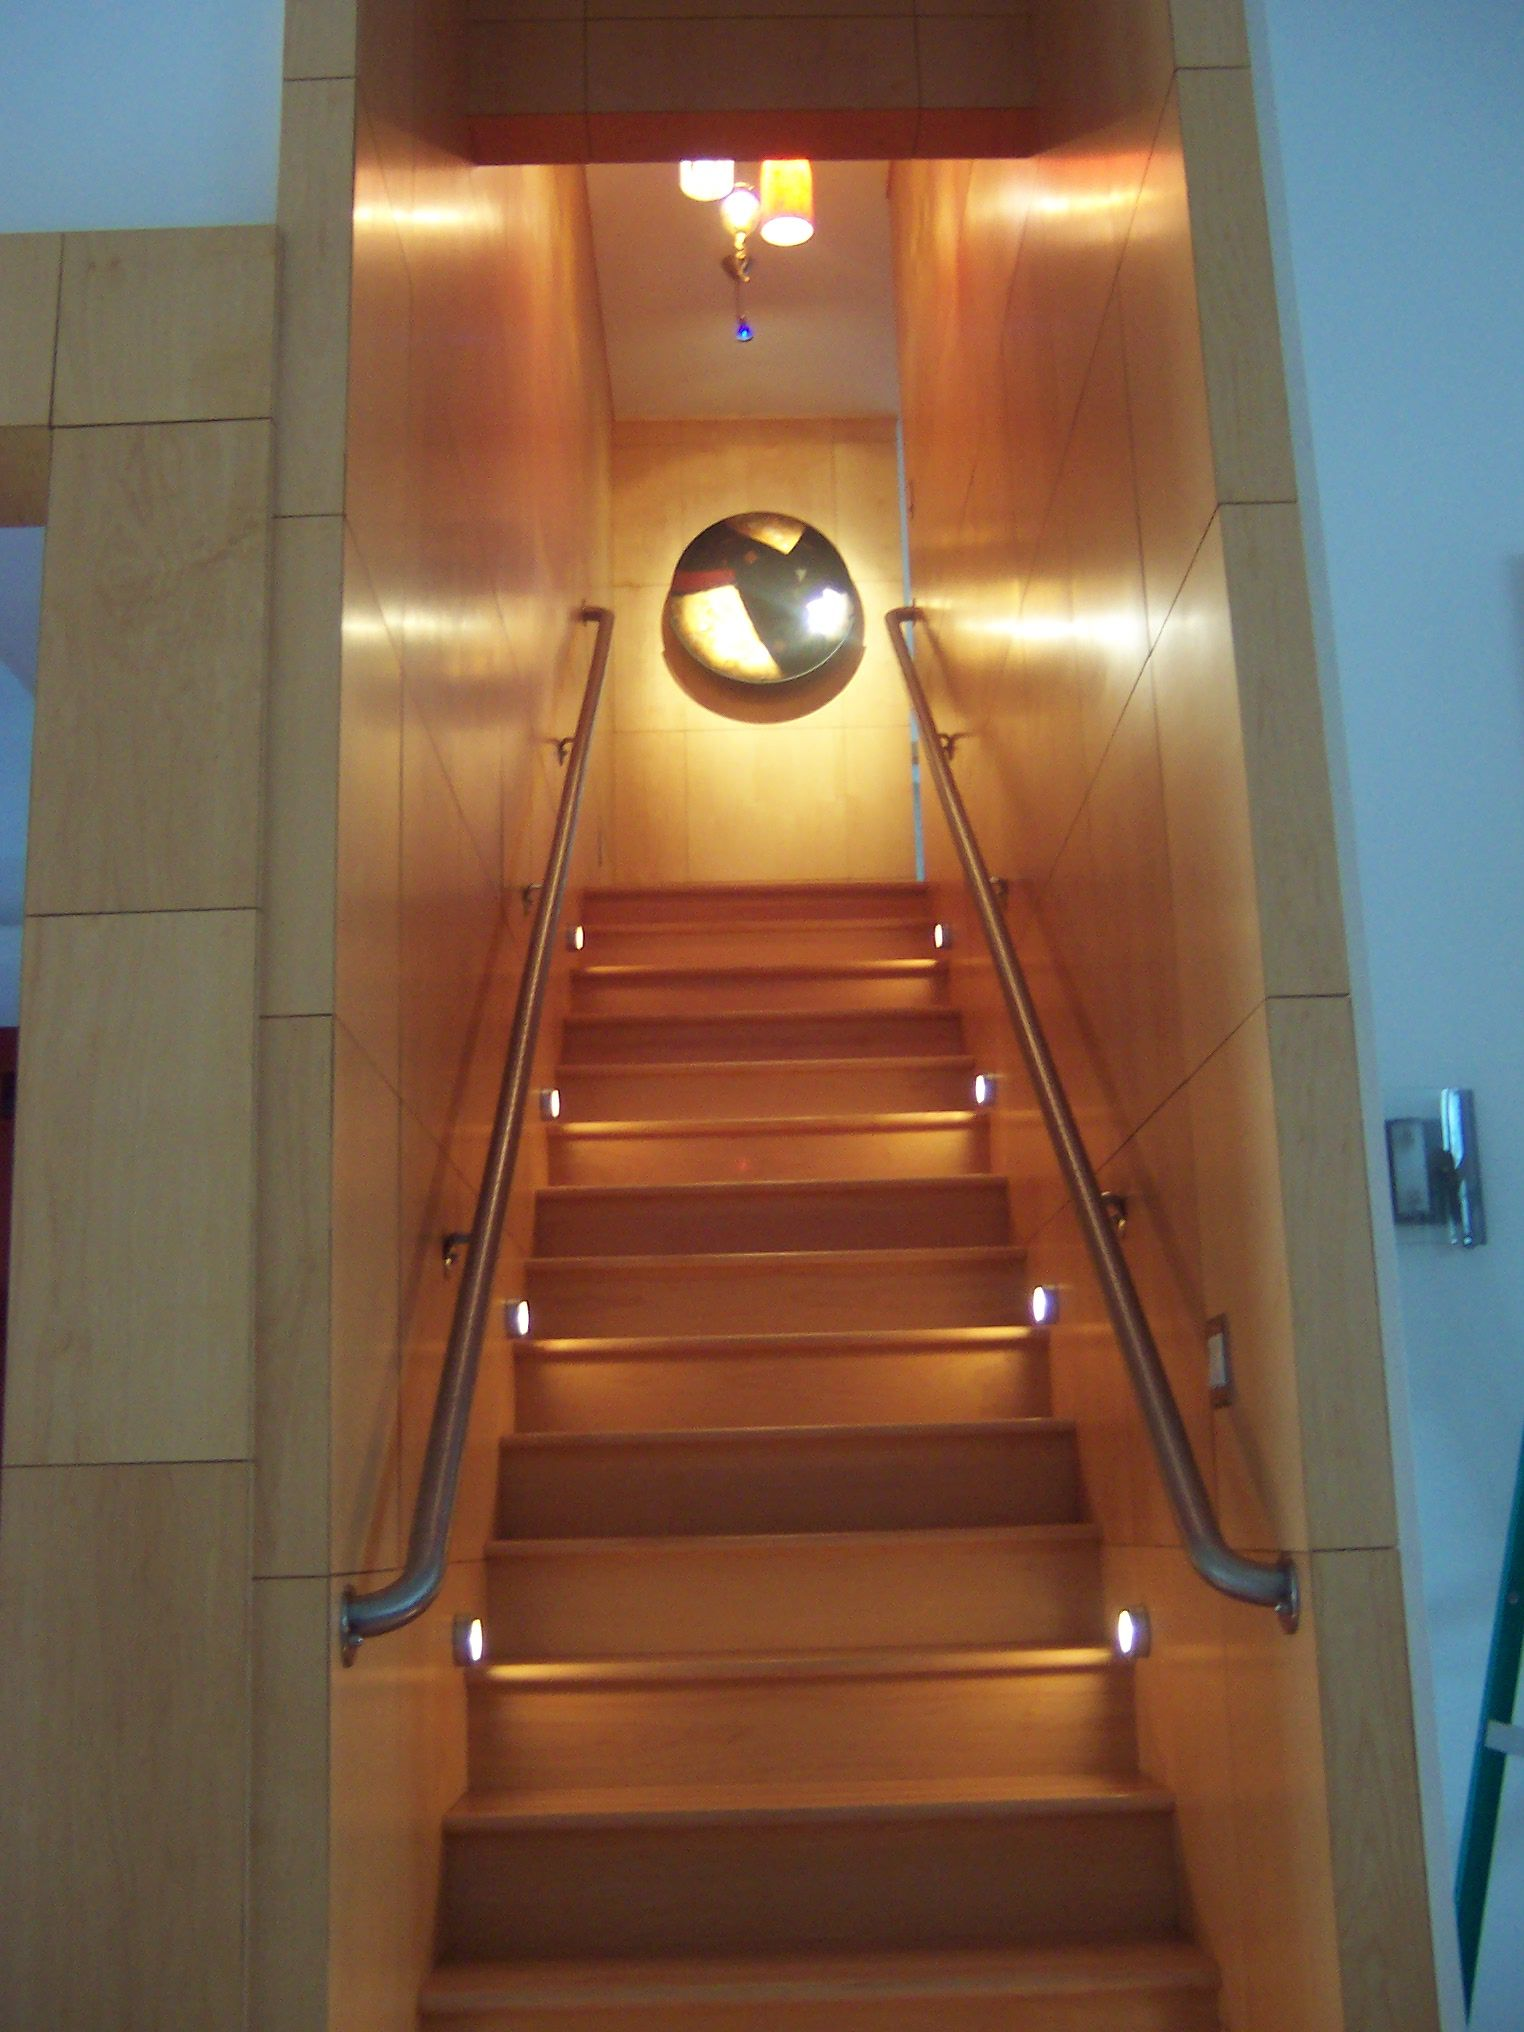 Lighting Basement Washroom Stairs: 17 Light Stairs Ideas You Can Start Using Today